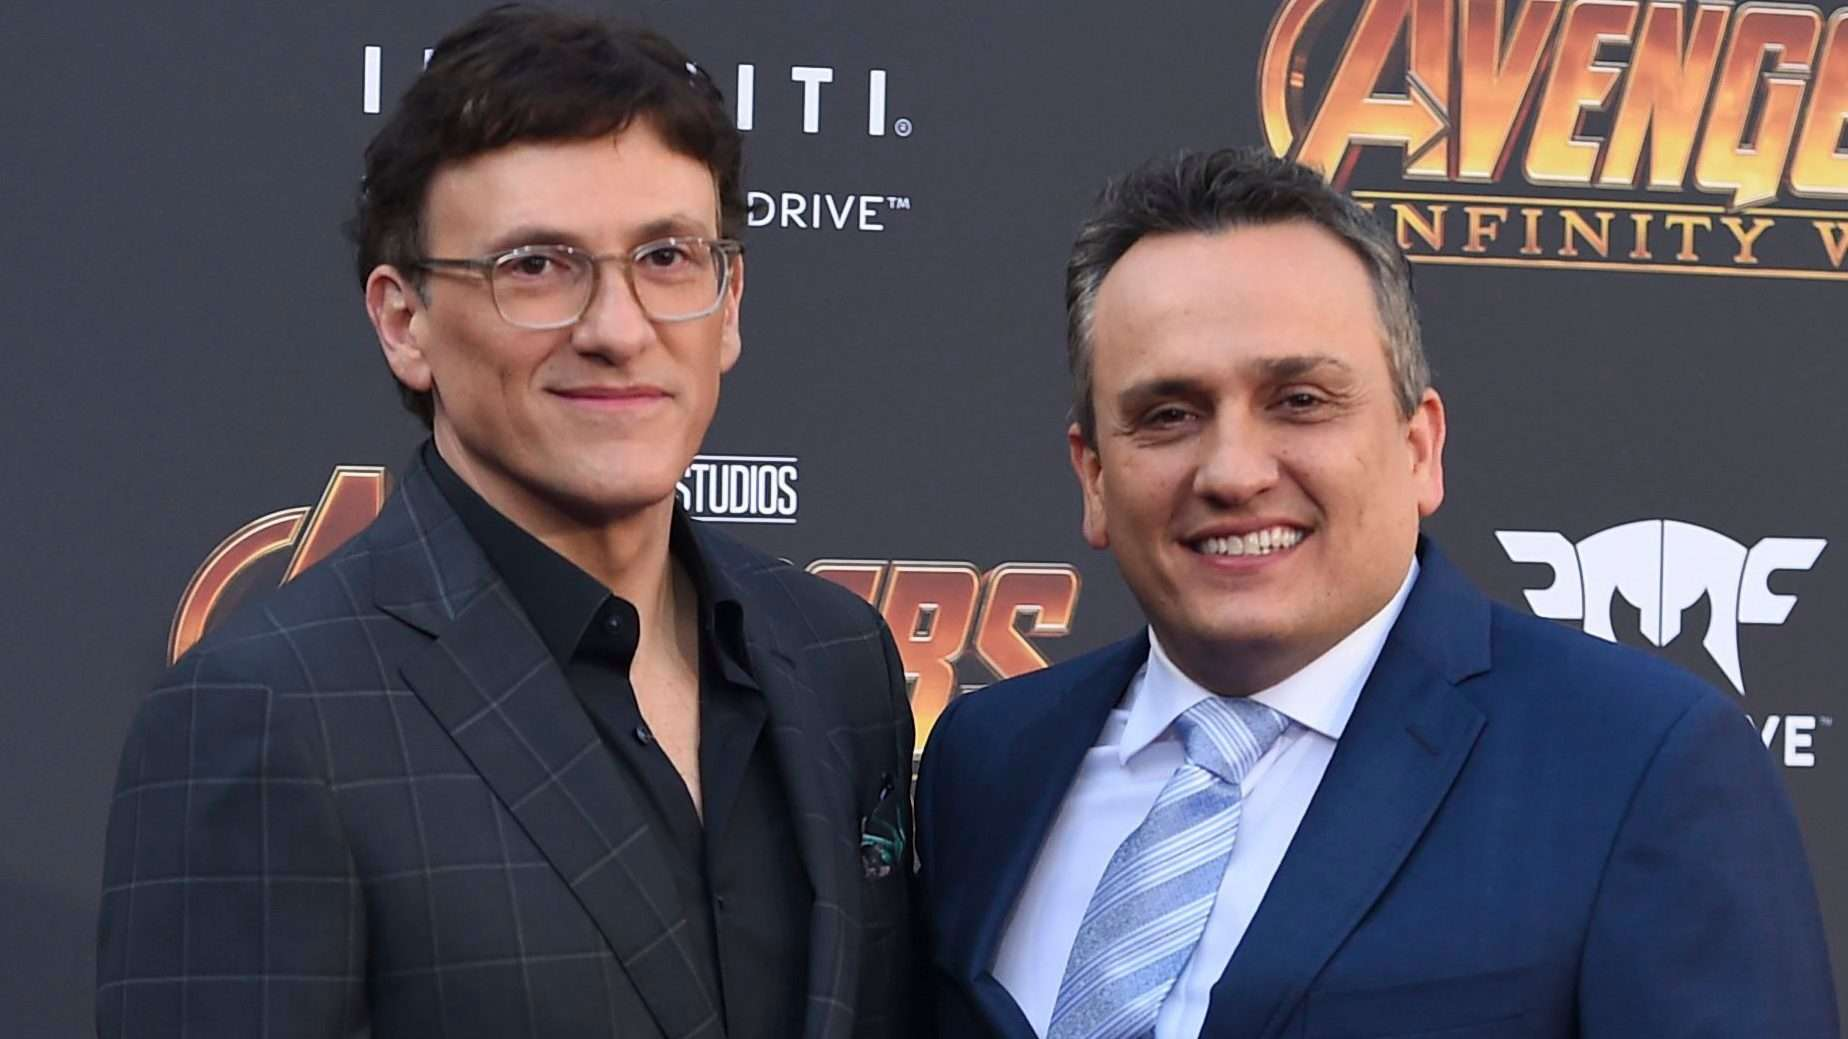 russo brothers .